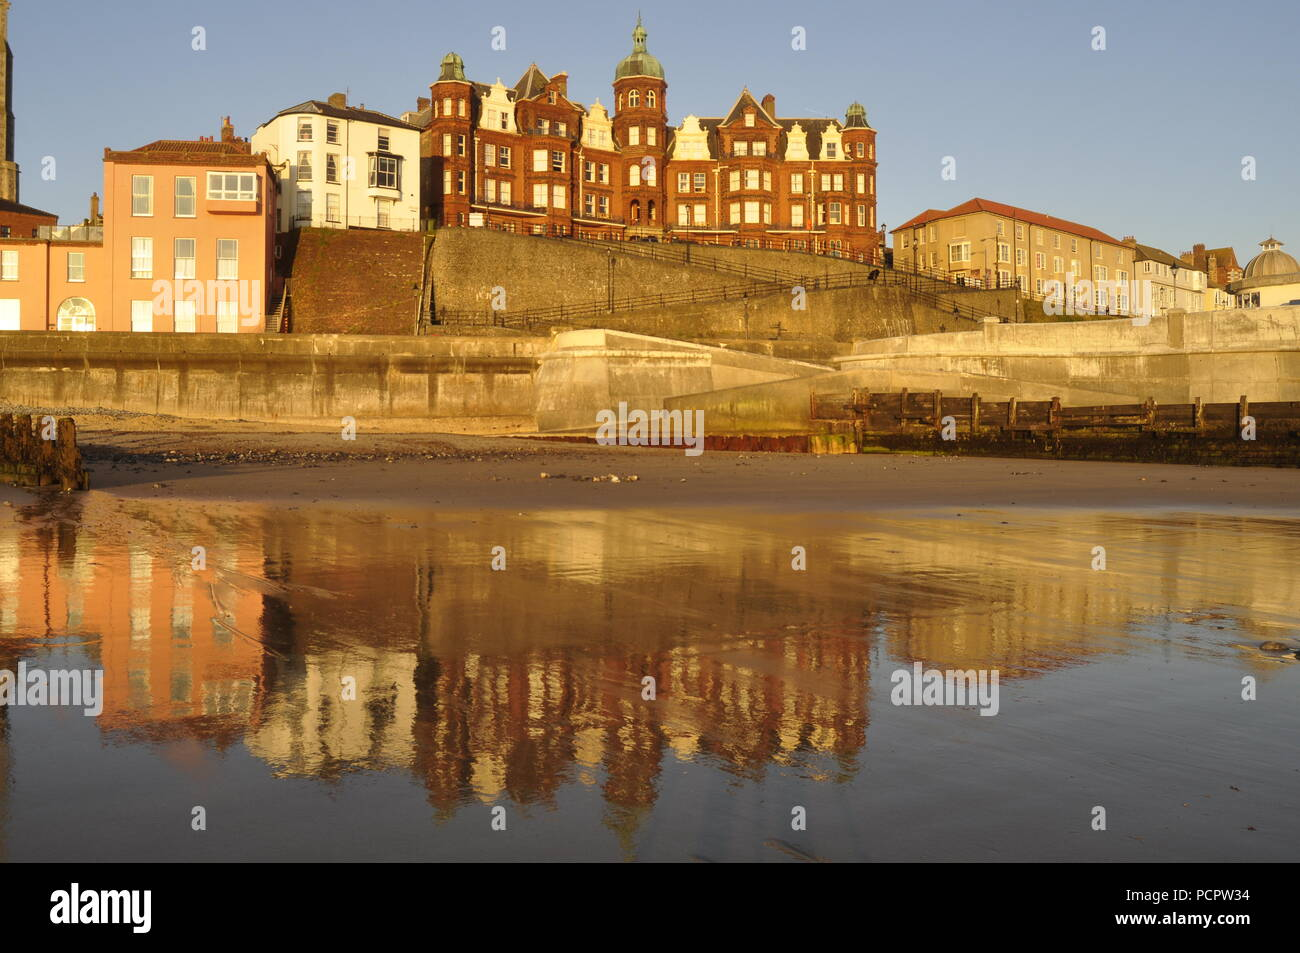 The Hotel de Paris on Cromer seafront, Norfolk, England UK Stock Photo